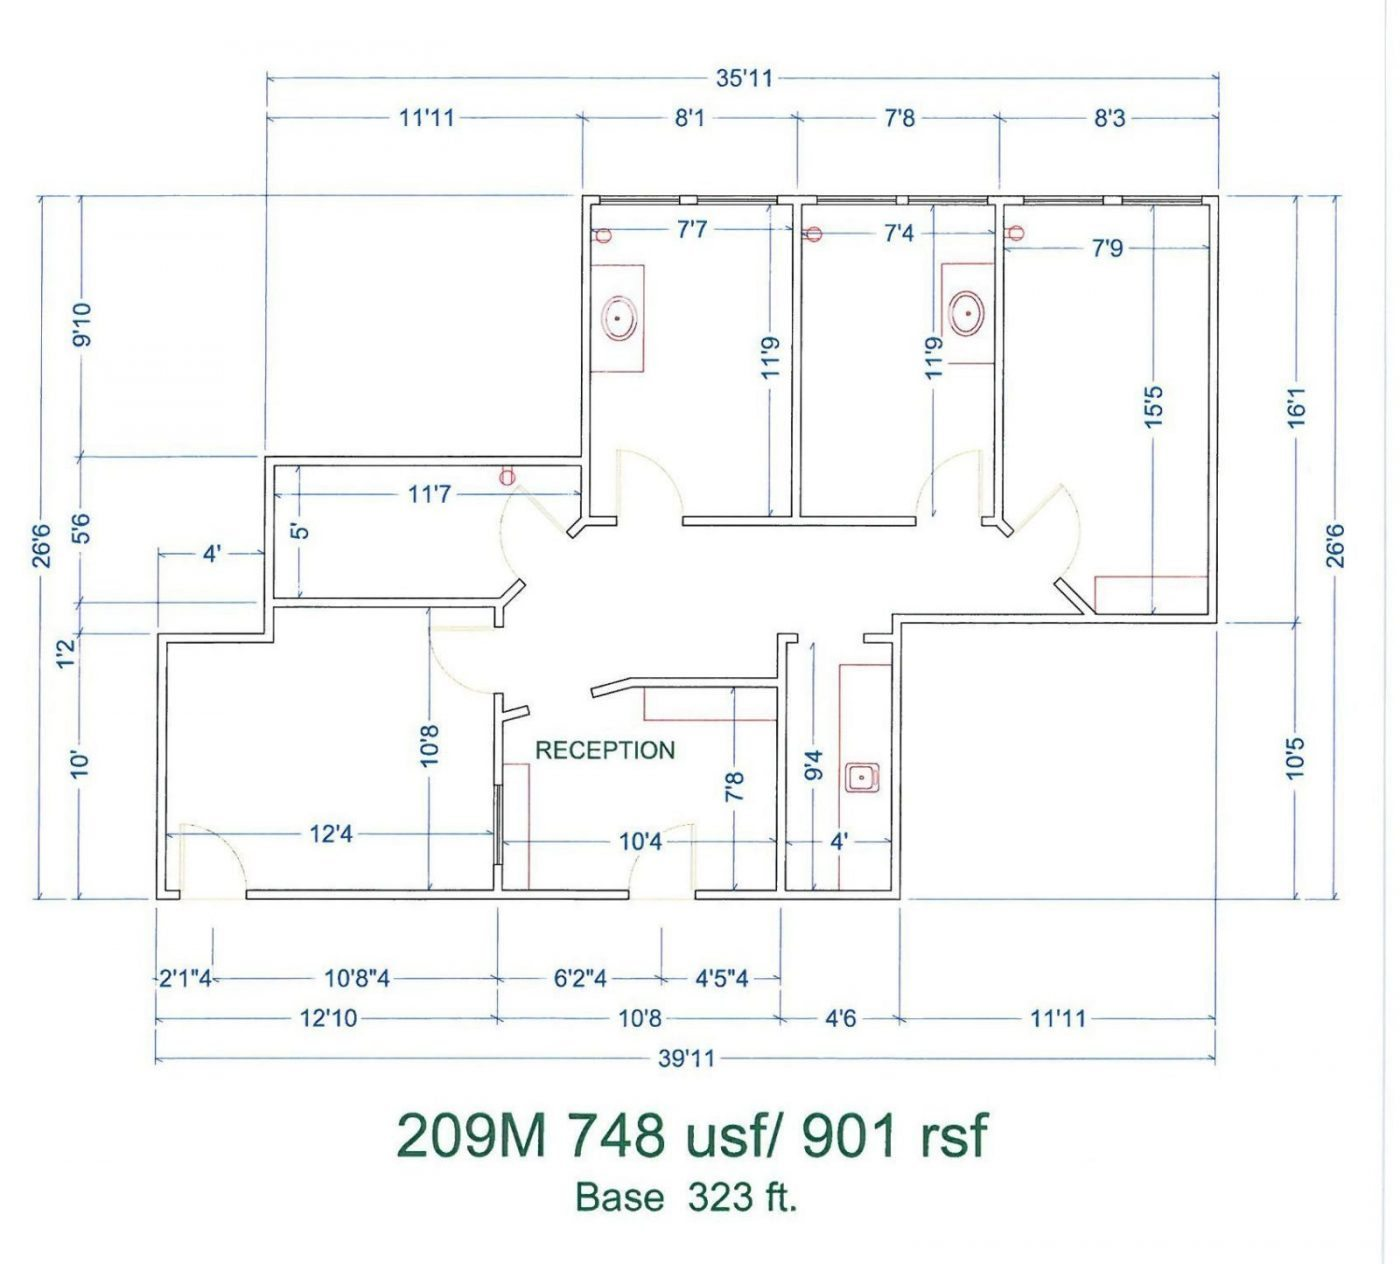 Floor Plan for unit 209M at 20905 Greenfield Rd - 2nd Floor Southfield, MI 48075